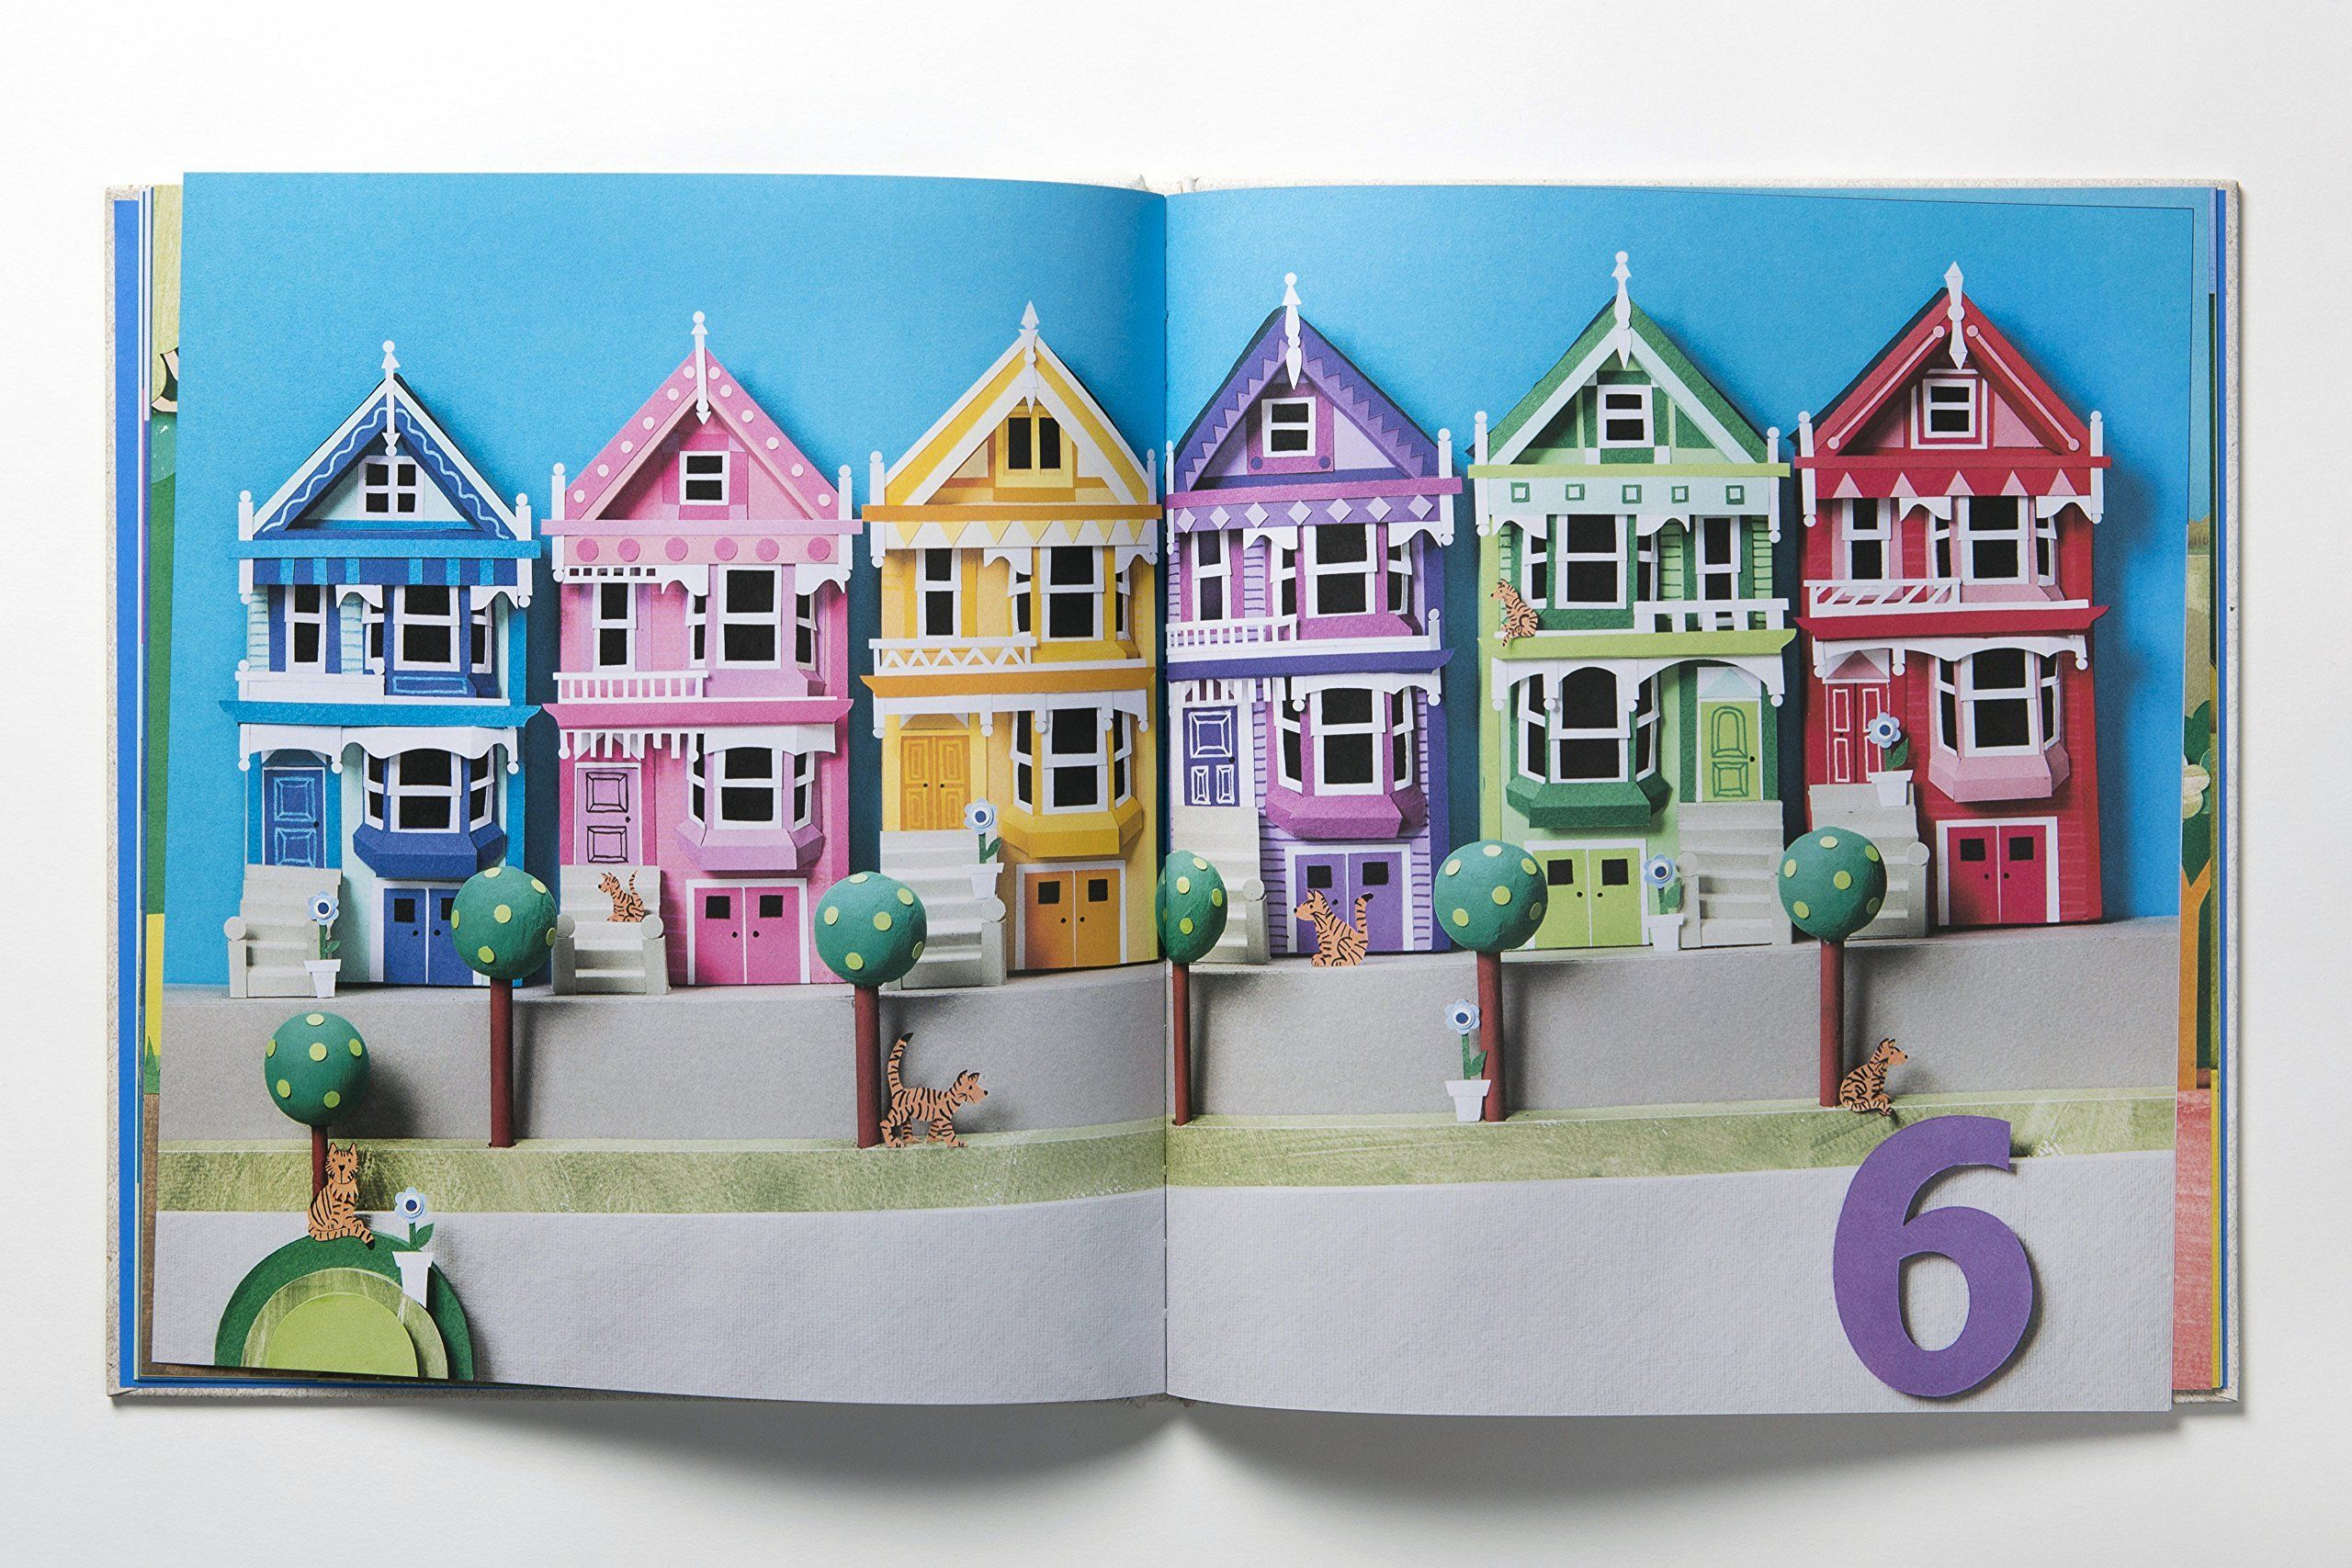 Little Houses: A Counting Book (Arriving End of Jan) Beaglier Books